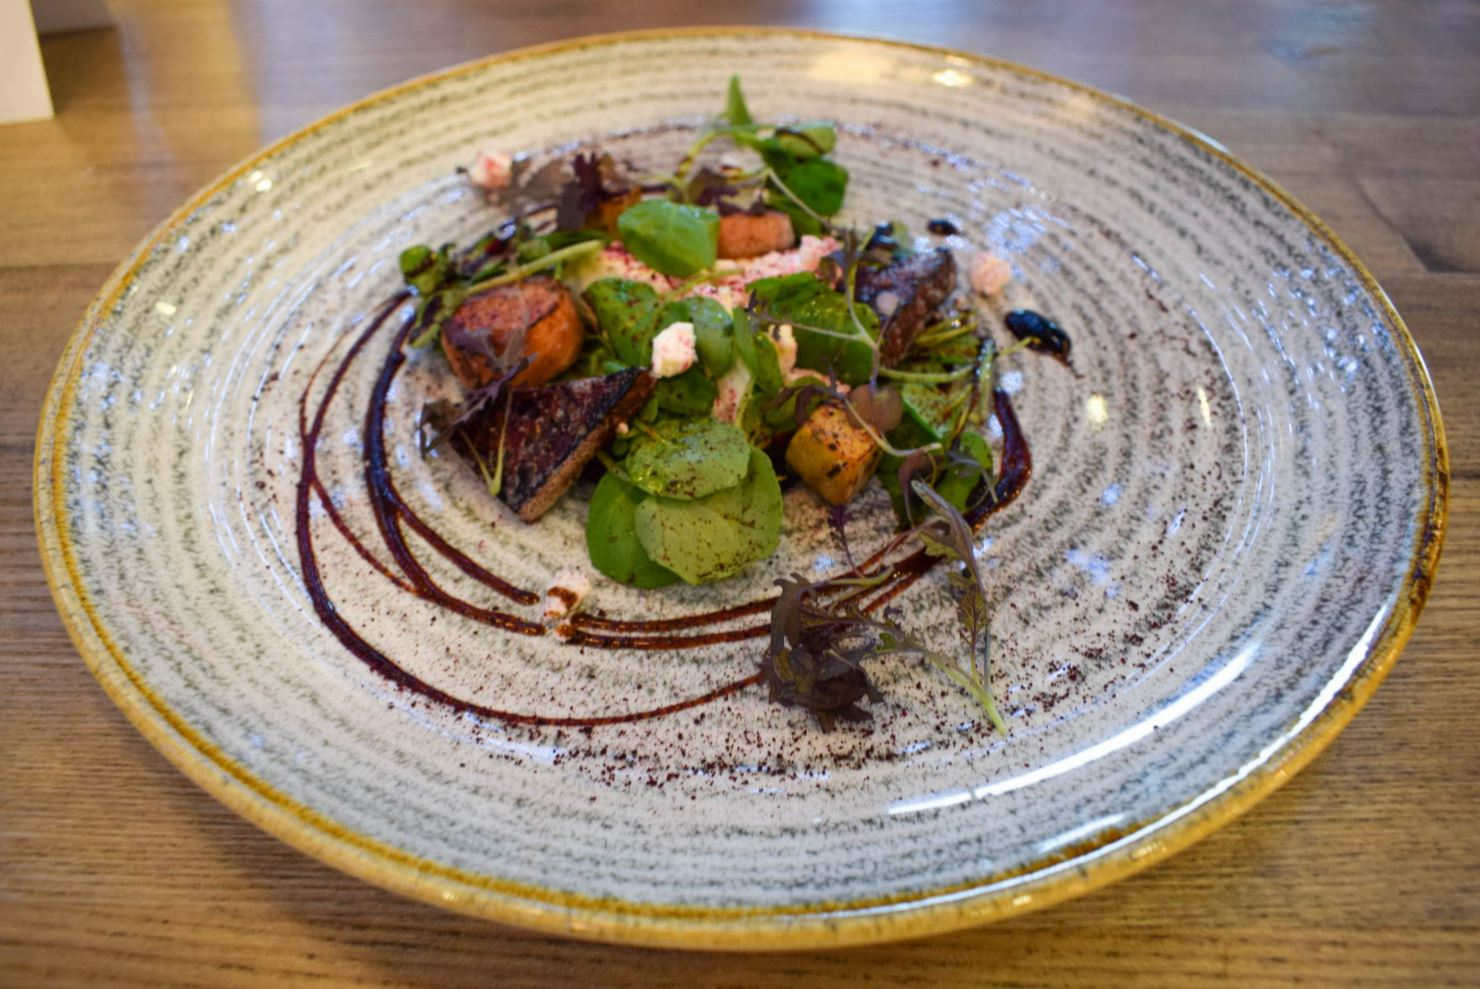 EATERY REVIEW: THE YARD, DERBY